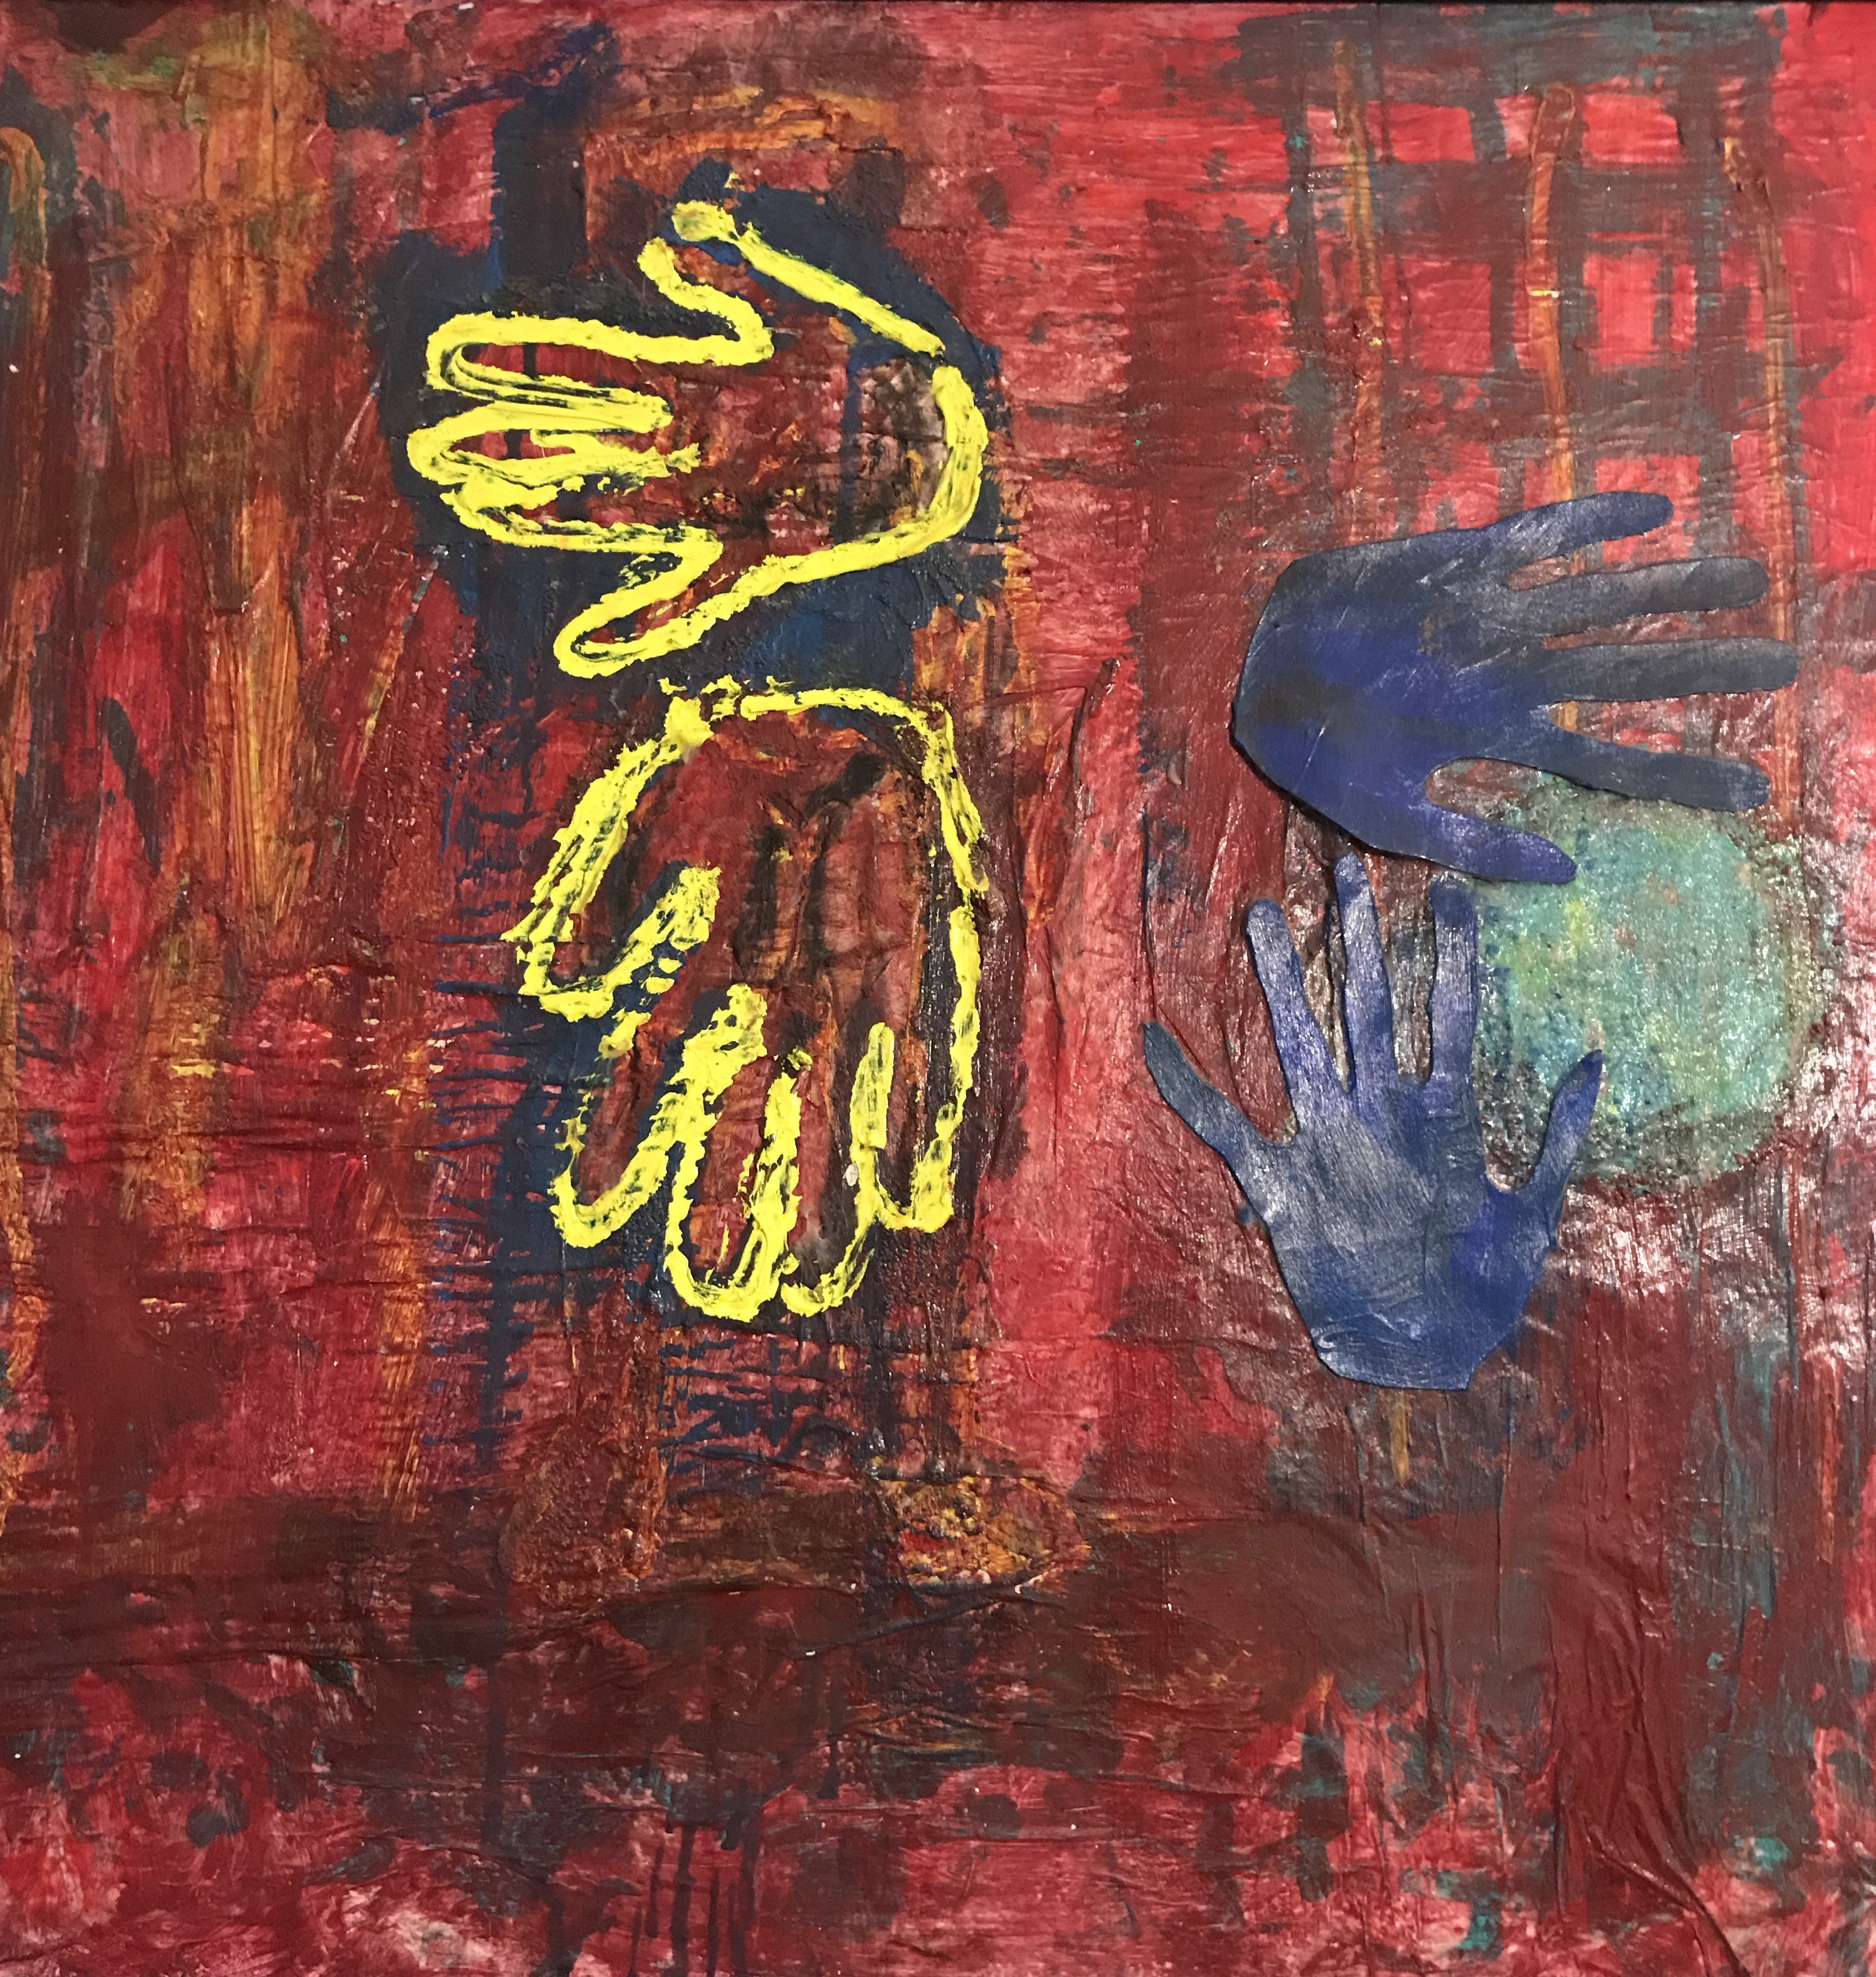 painting with red background, yellow and blue hands